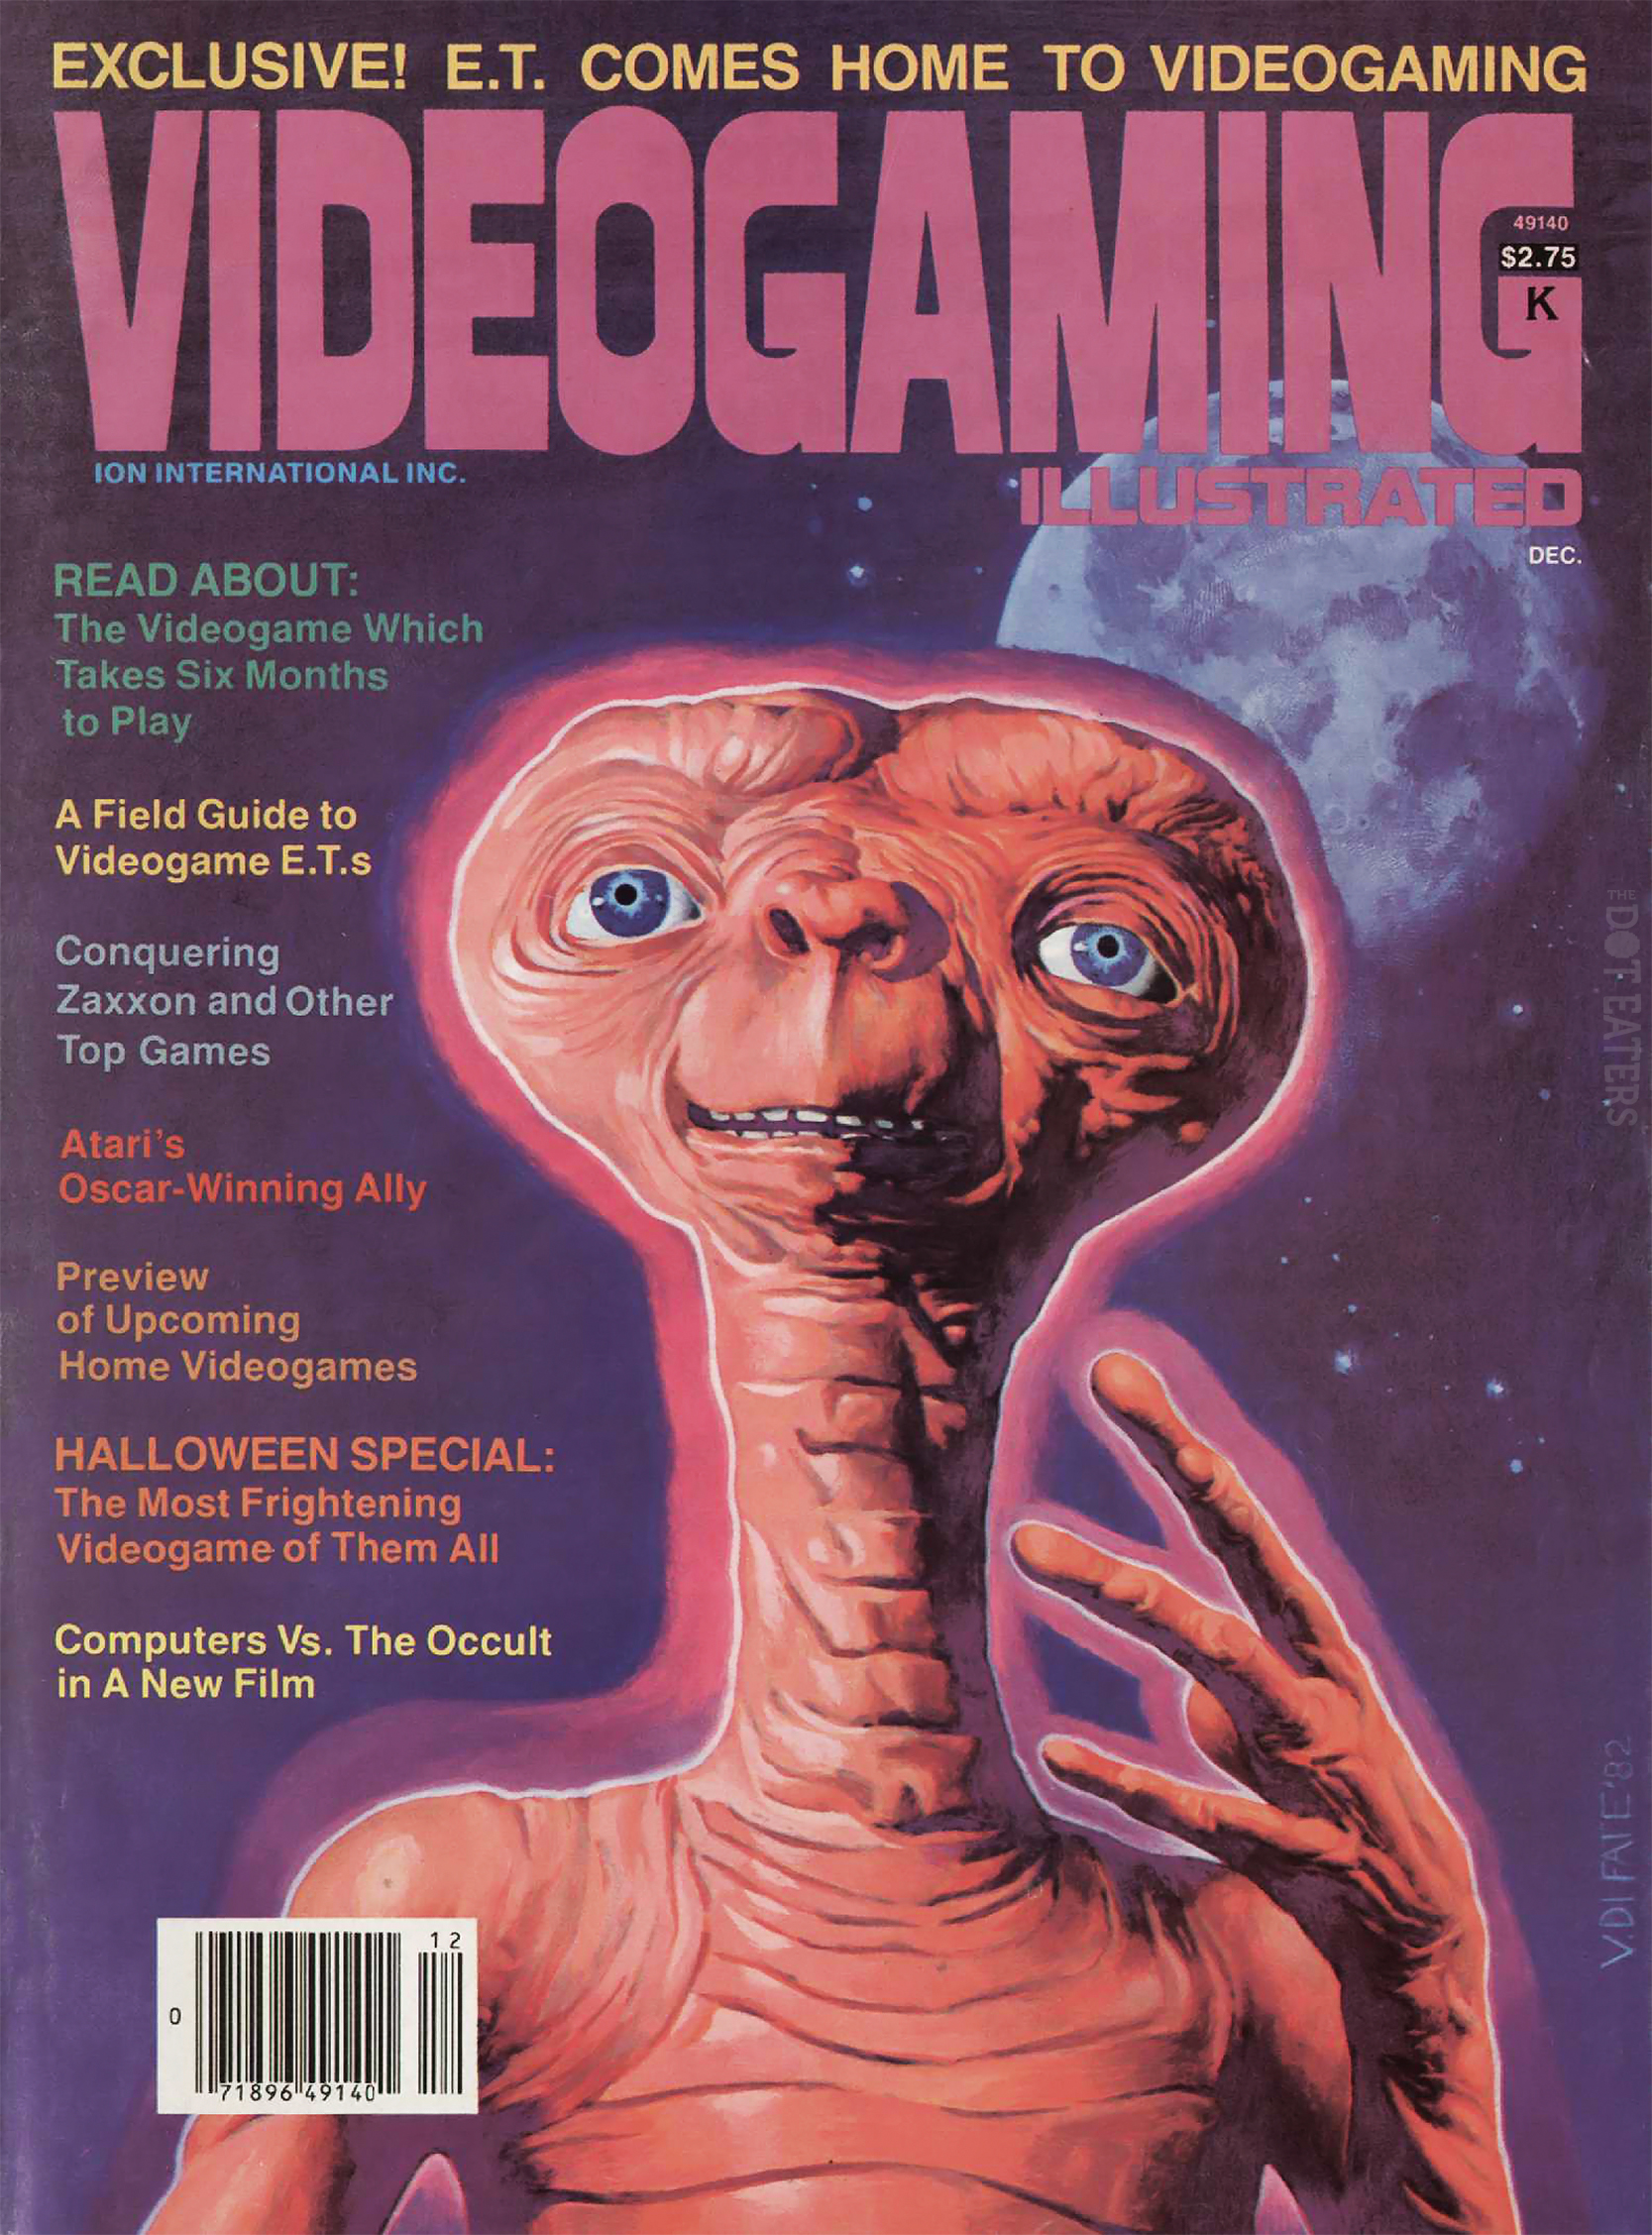 Magazine cover with E.T., star of a home video game by Atari